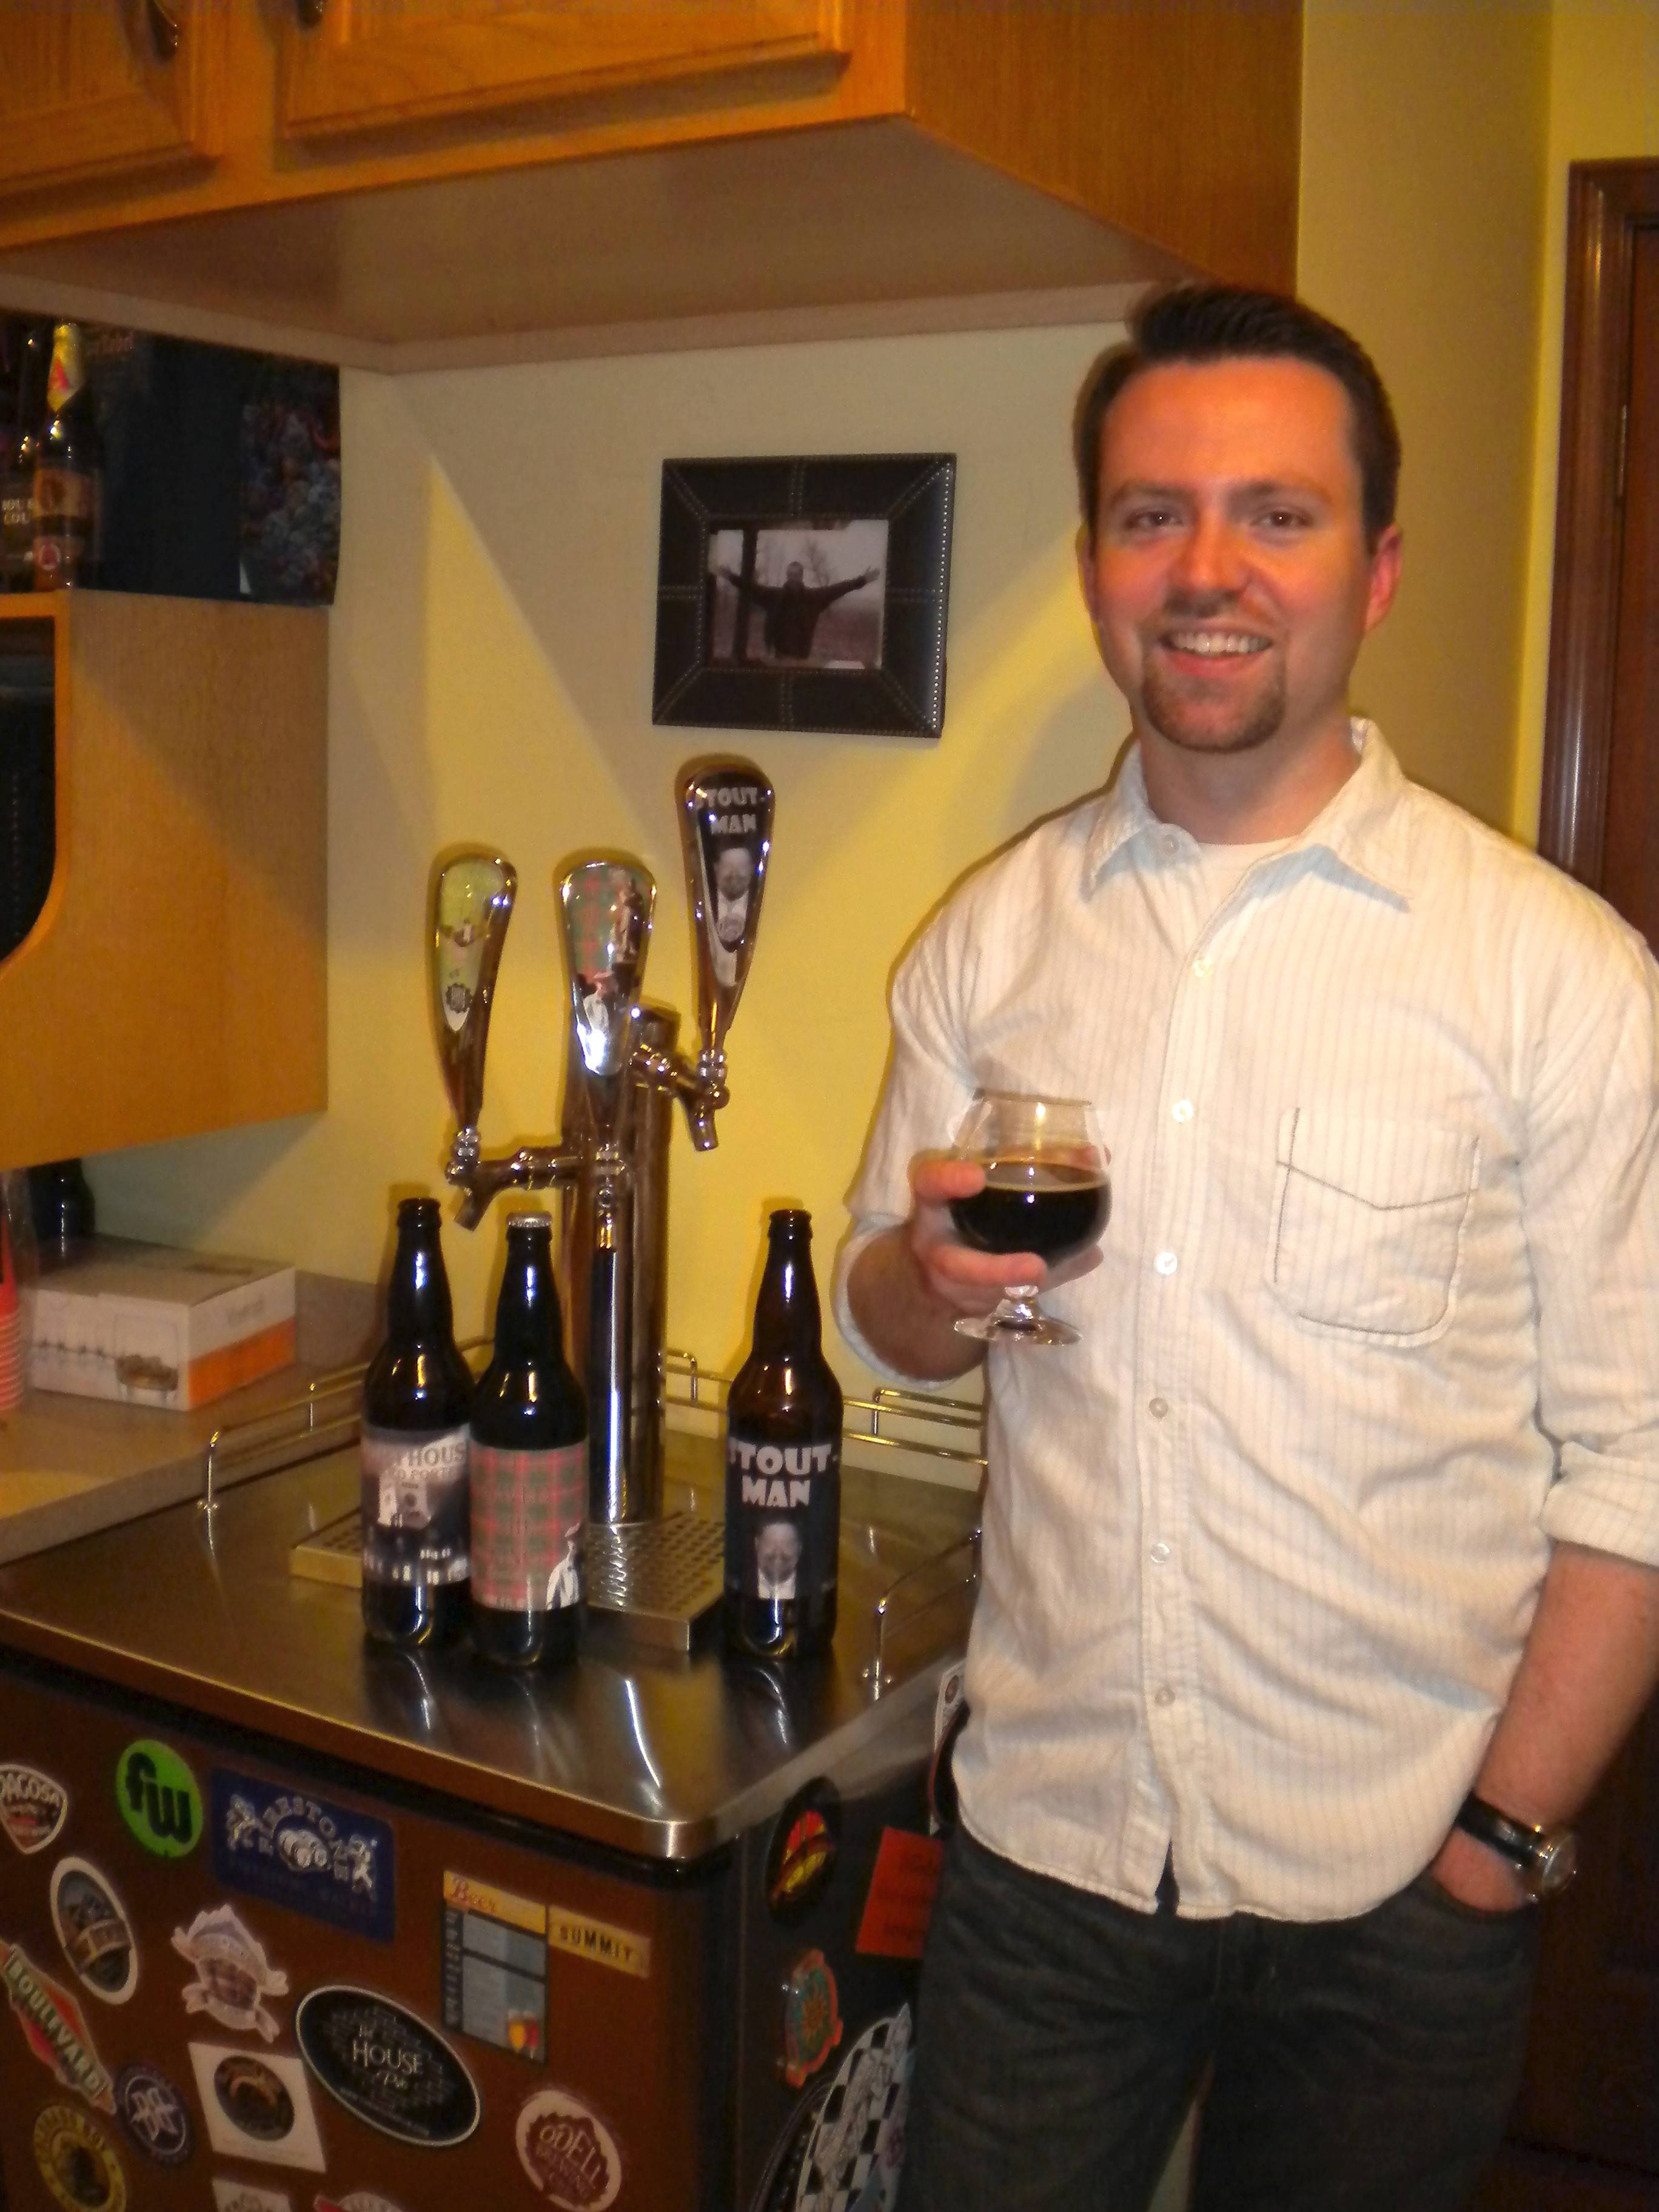 Ben Sampson hopes to open a brewery this summer in downtown Wheaton called Dry City Brew Works.